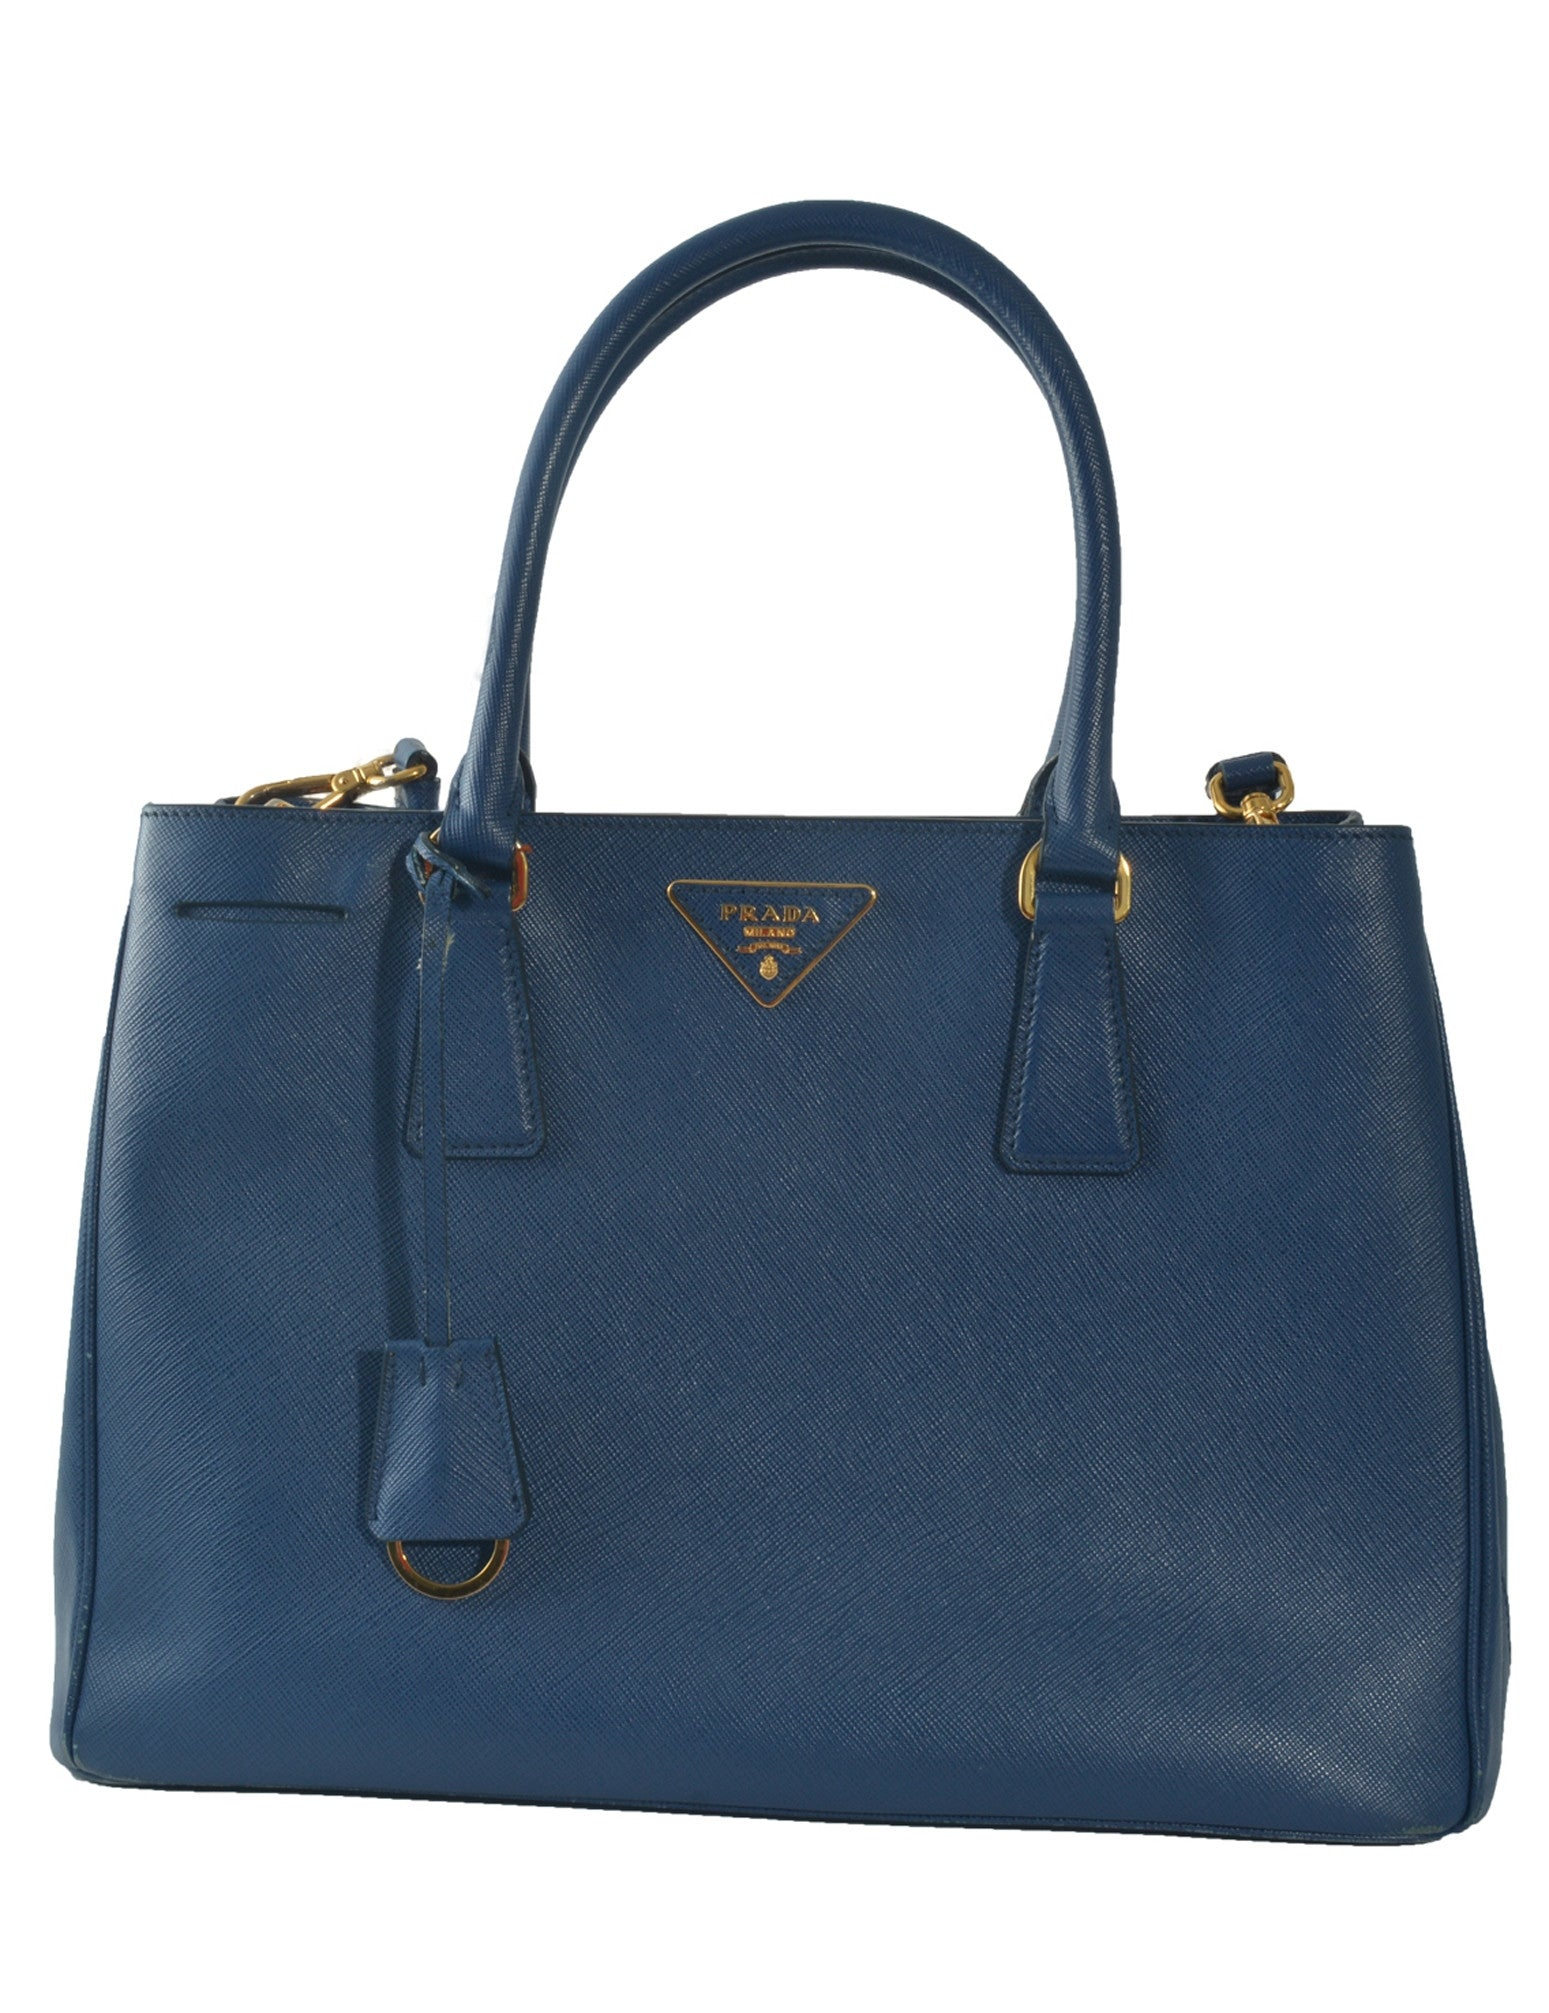 SAFFIANO LUX LEATHER HANDBAG